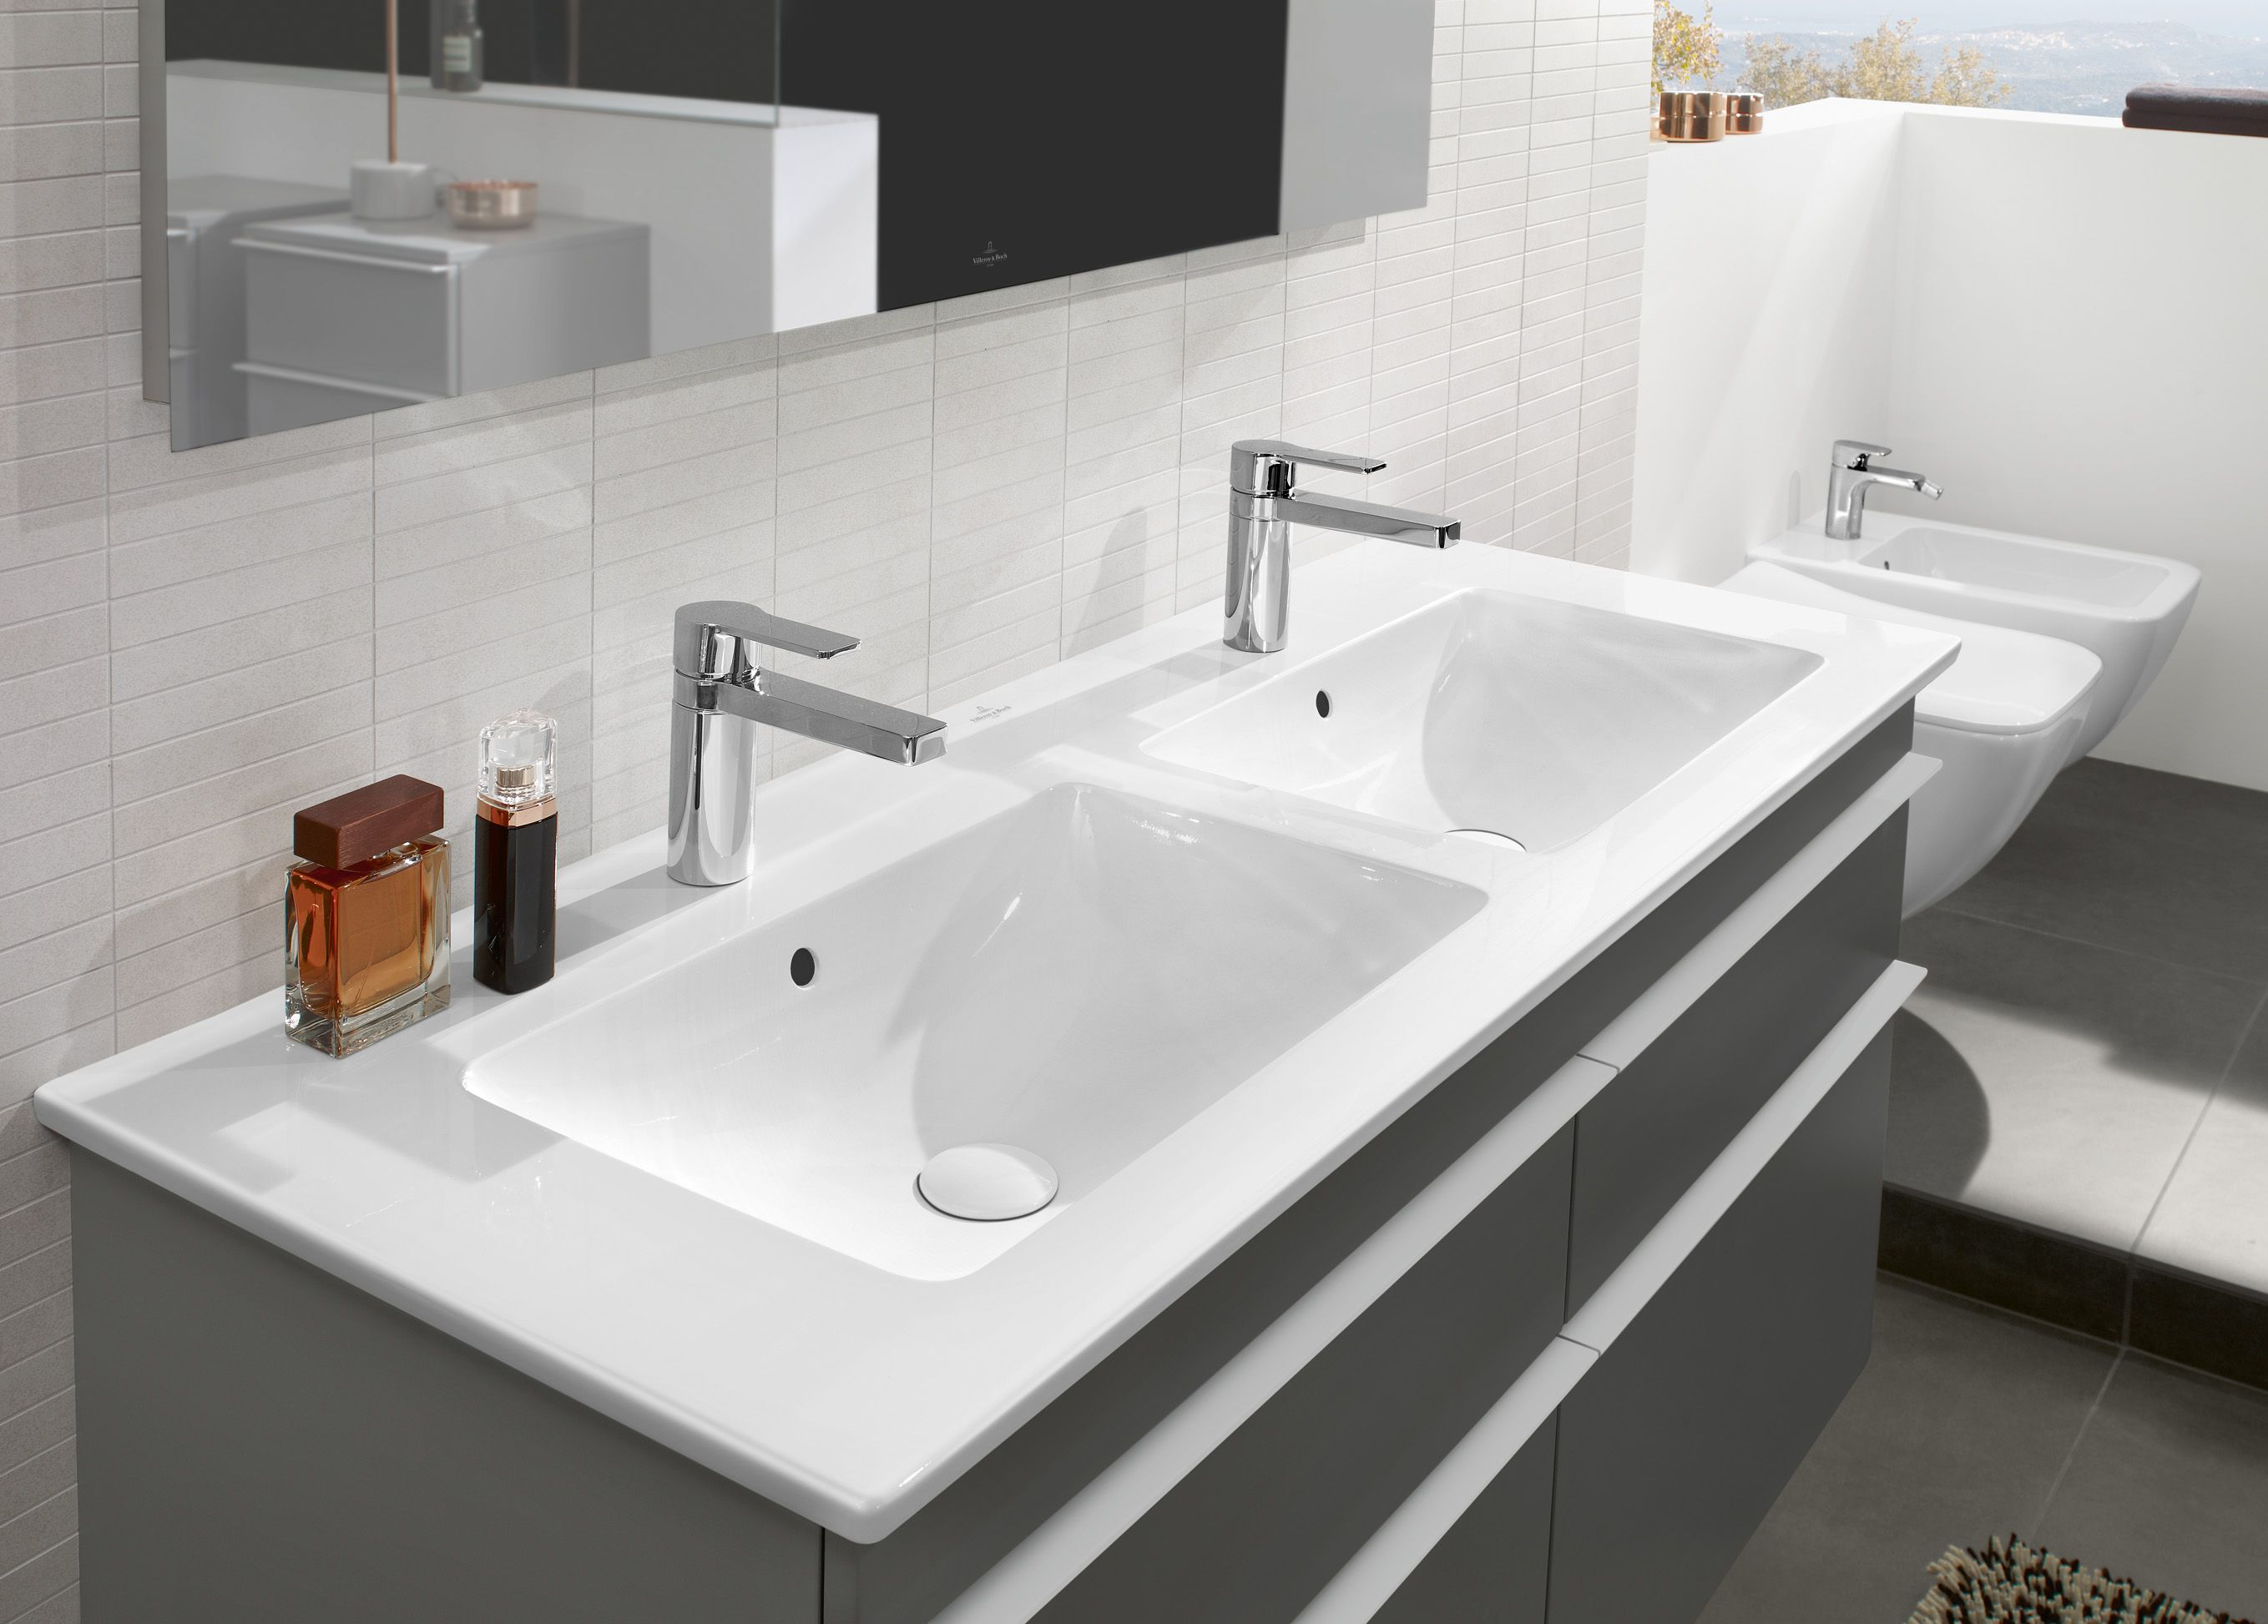 Burgbad Doppelwaschtisch 160 Venticello Learn More On Great Villeroy Boch Bathroom